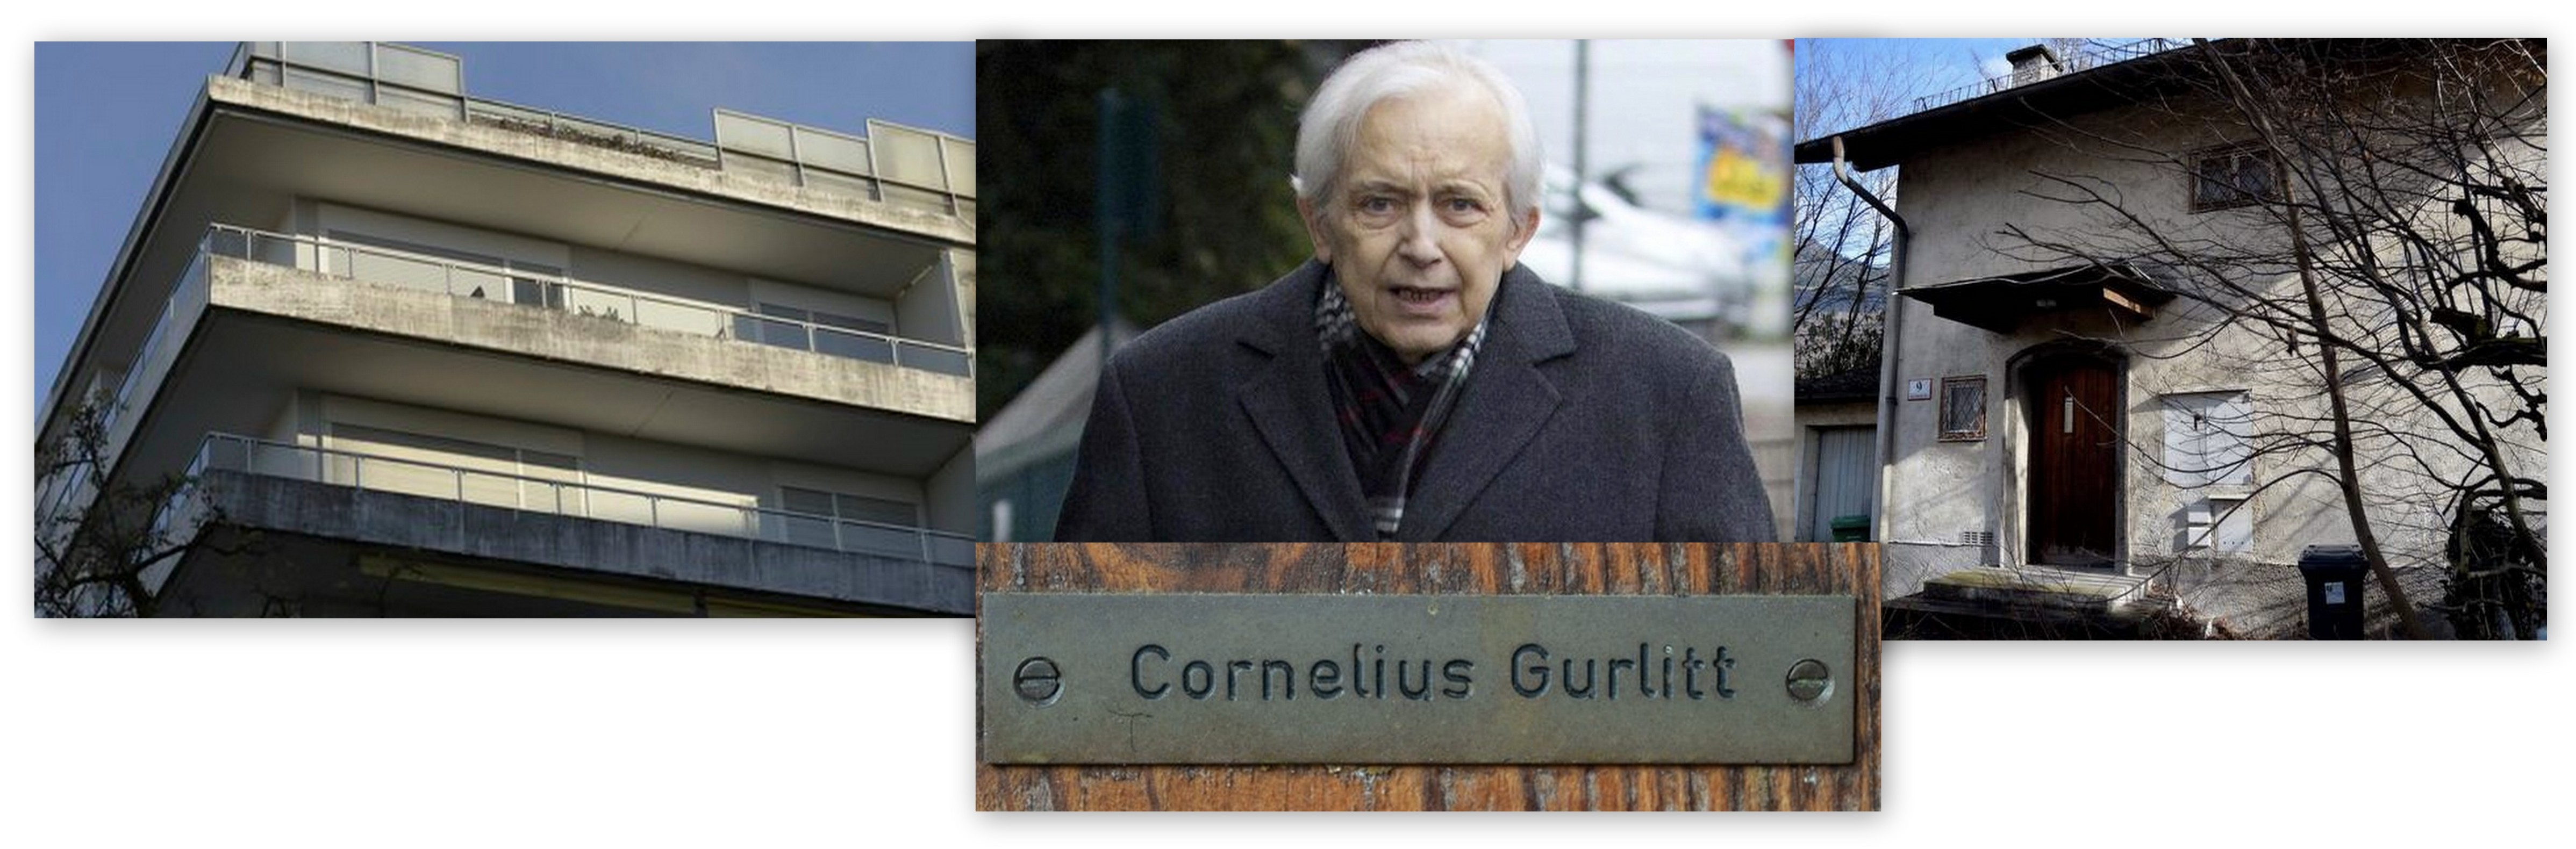 Whois Gurlitt.info? | Center for Art Law